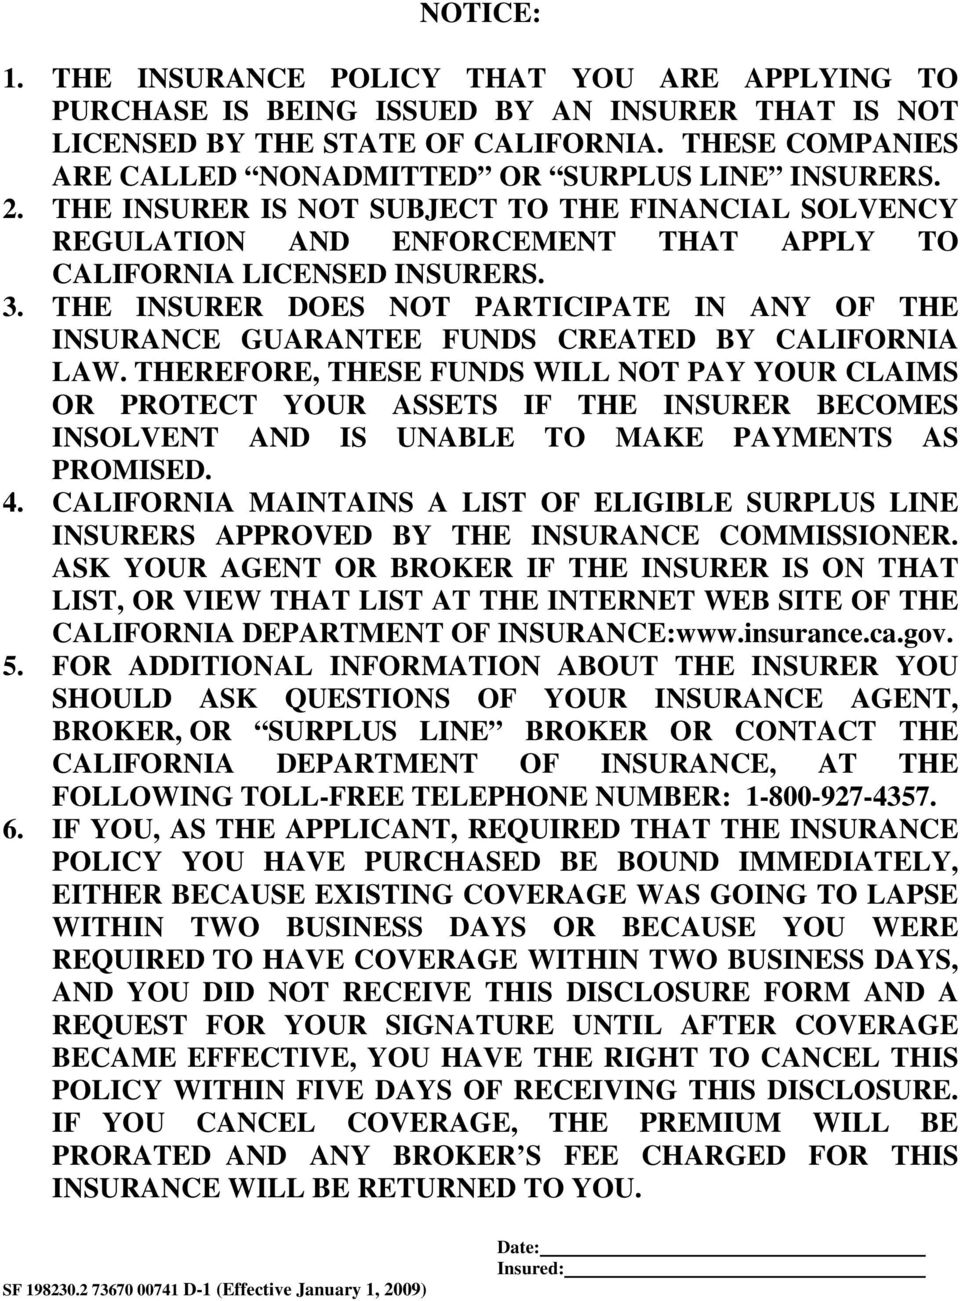 THE INSURER DOES NOT PARTICIPATE IN ANY OF THE INSURANCE GUARANTEE FUNDS CREATED BY CALIFORNIA LAW.